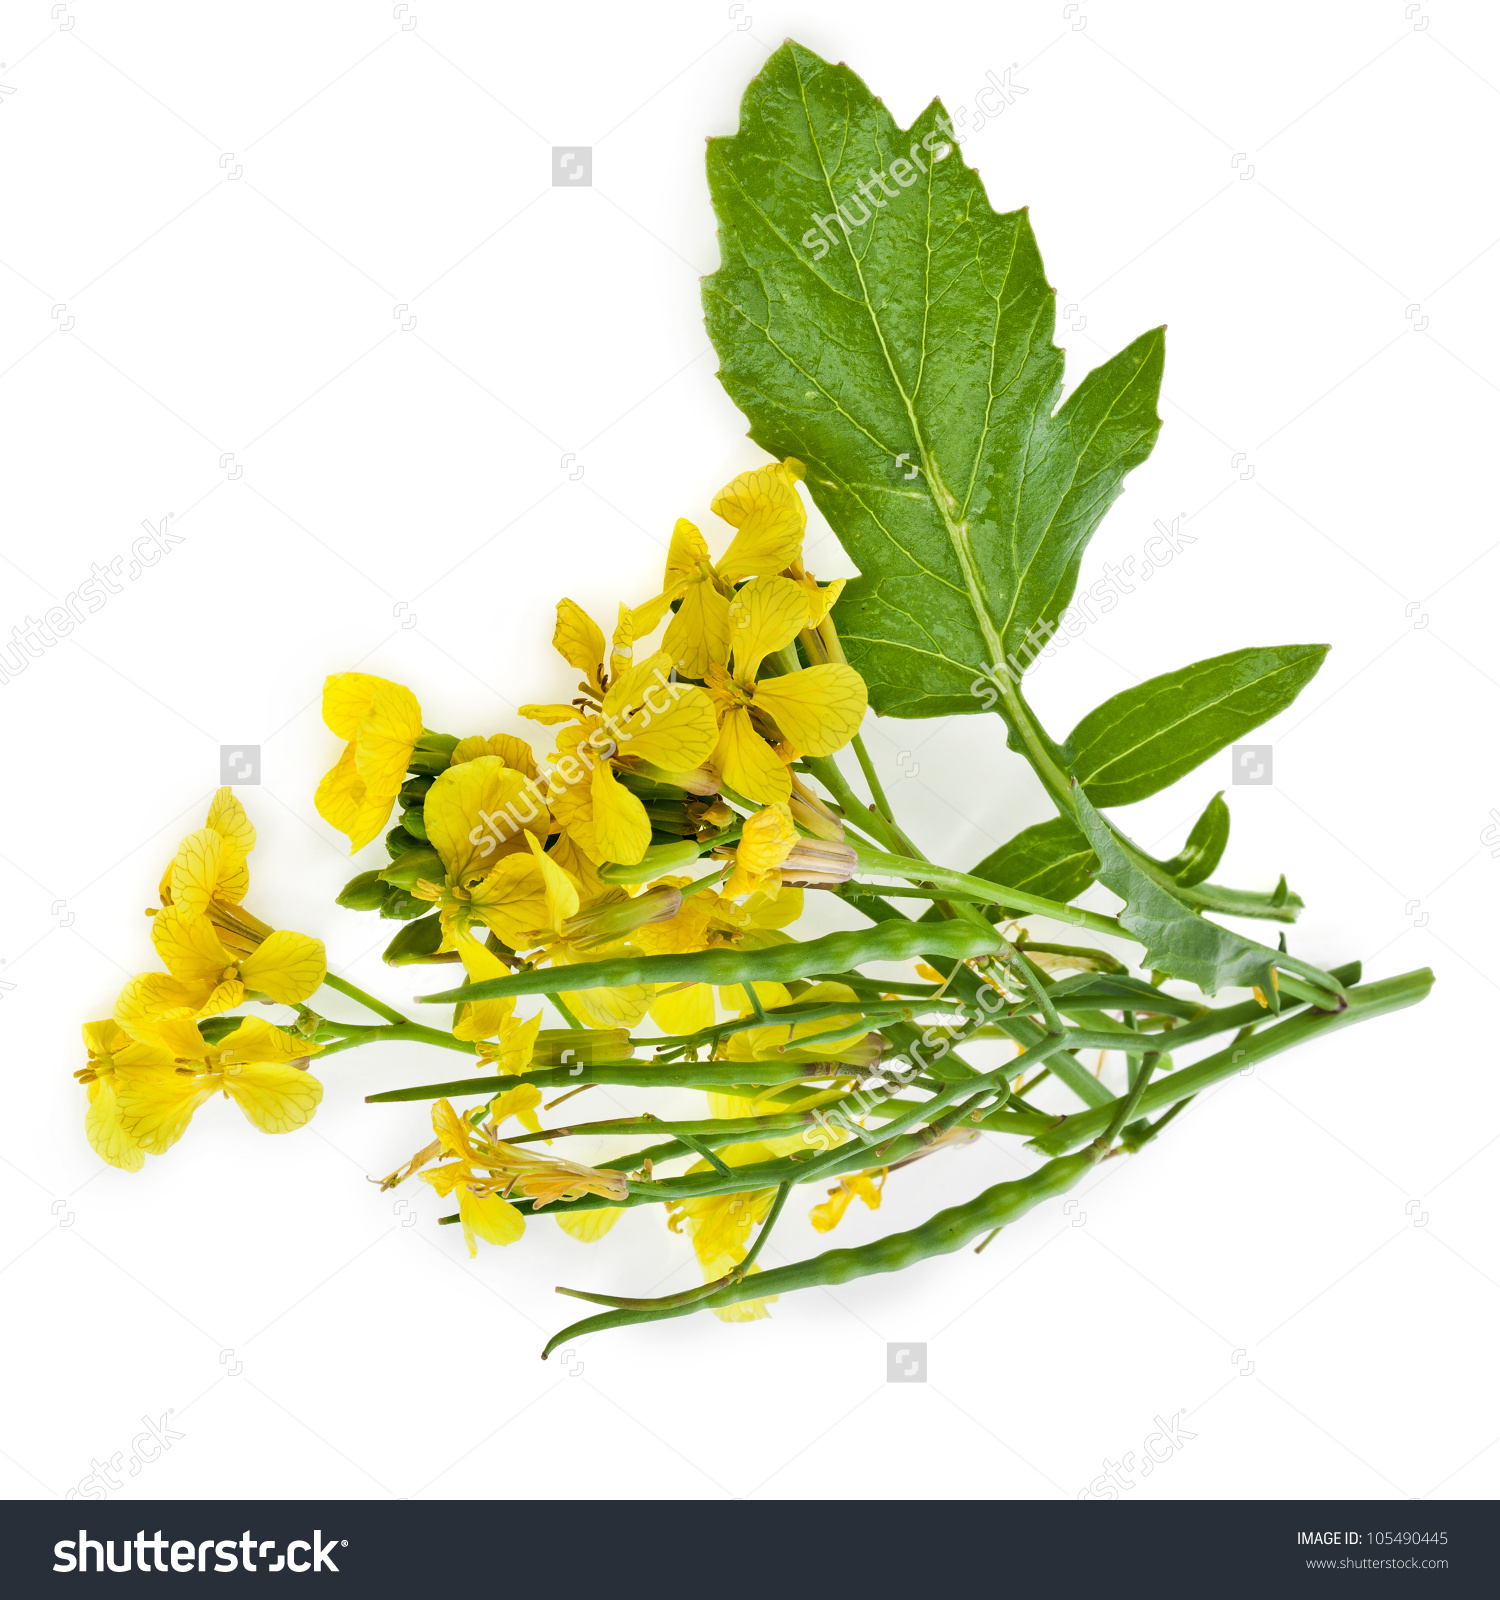 Rapeseed clipart #1, Download drawings